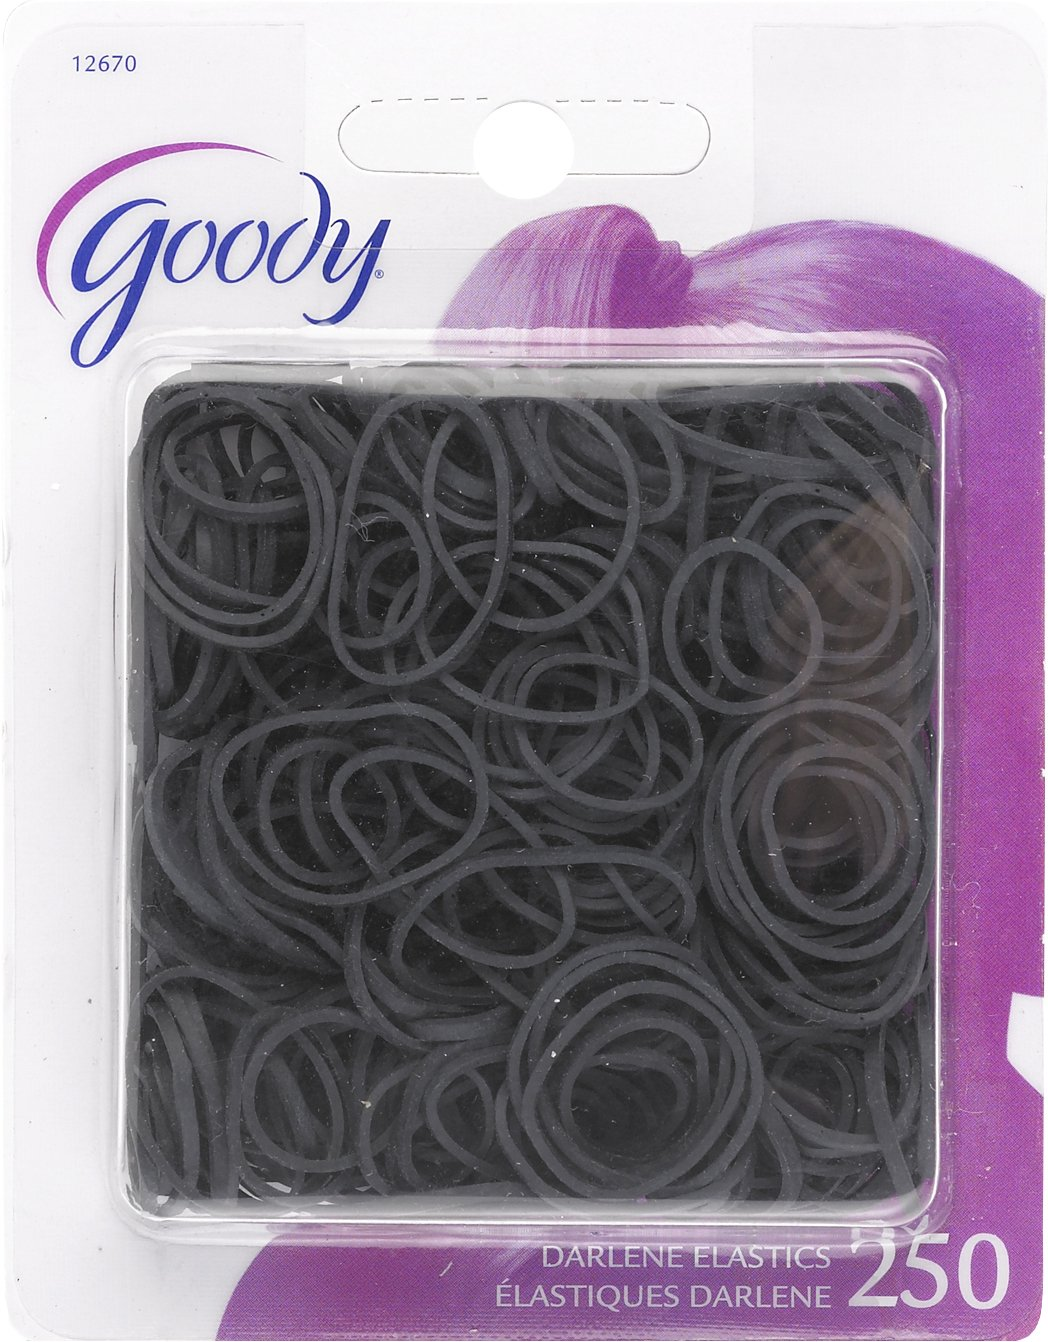 Goody Classics Rubberband, Black, 250 Count by Goody Classics 12670